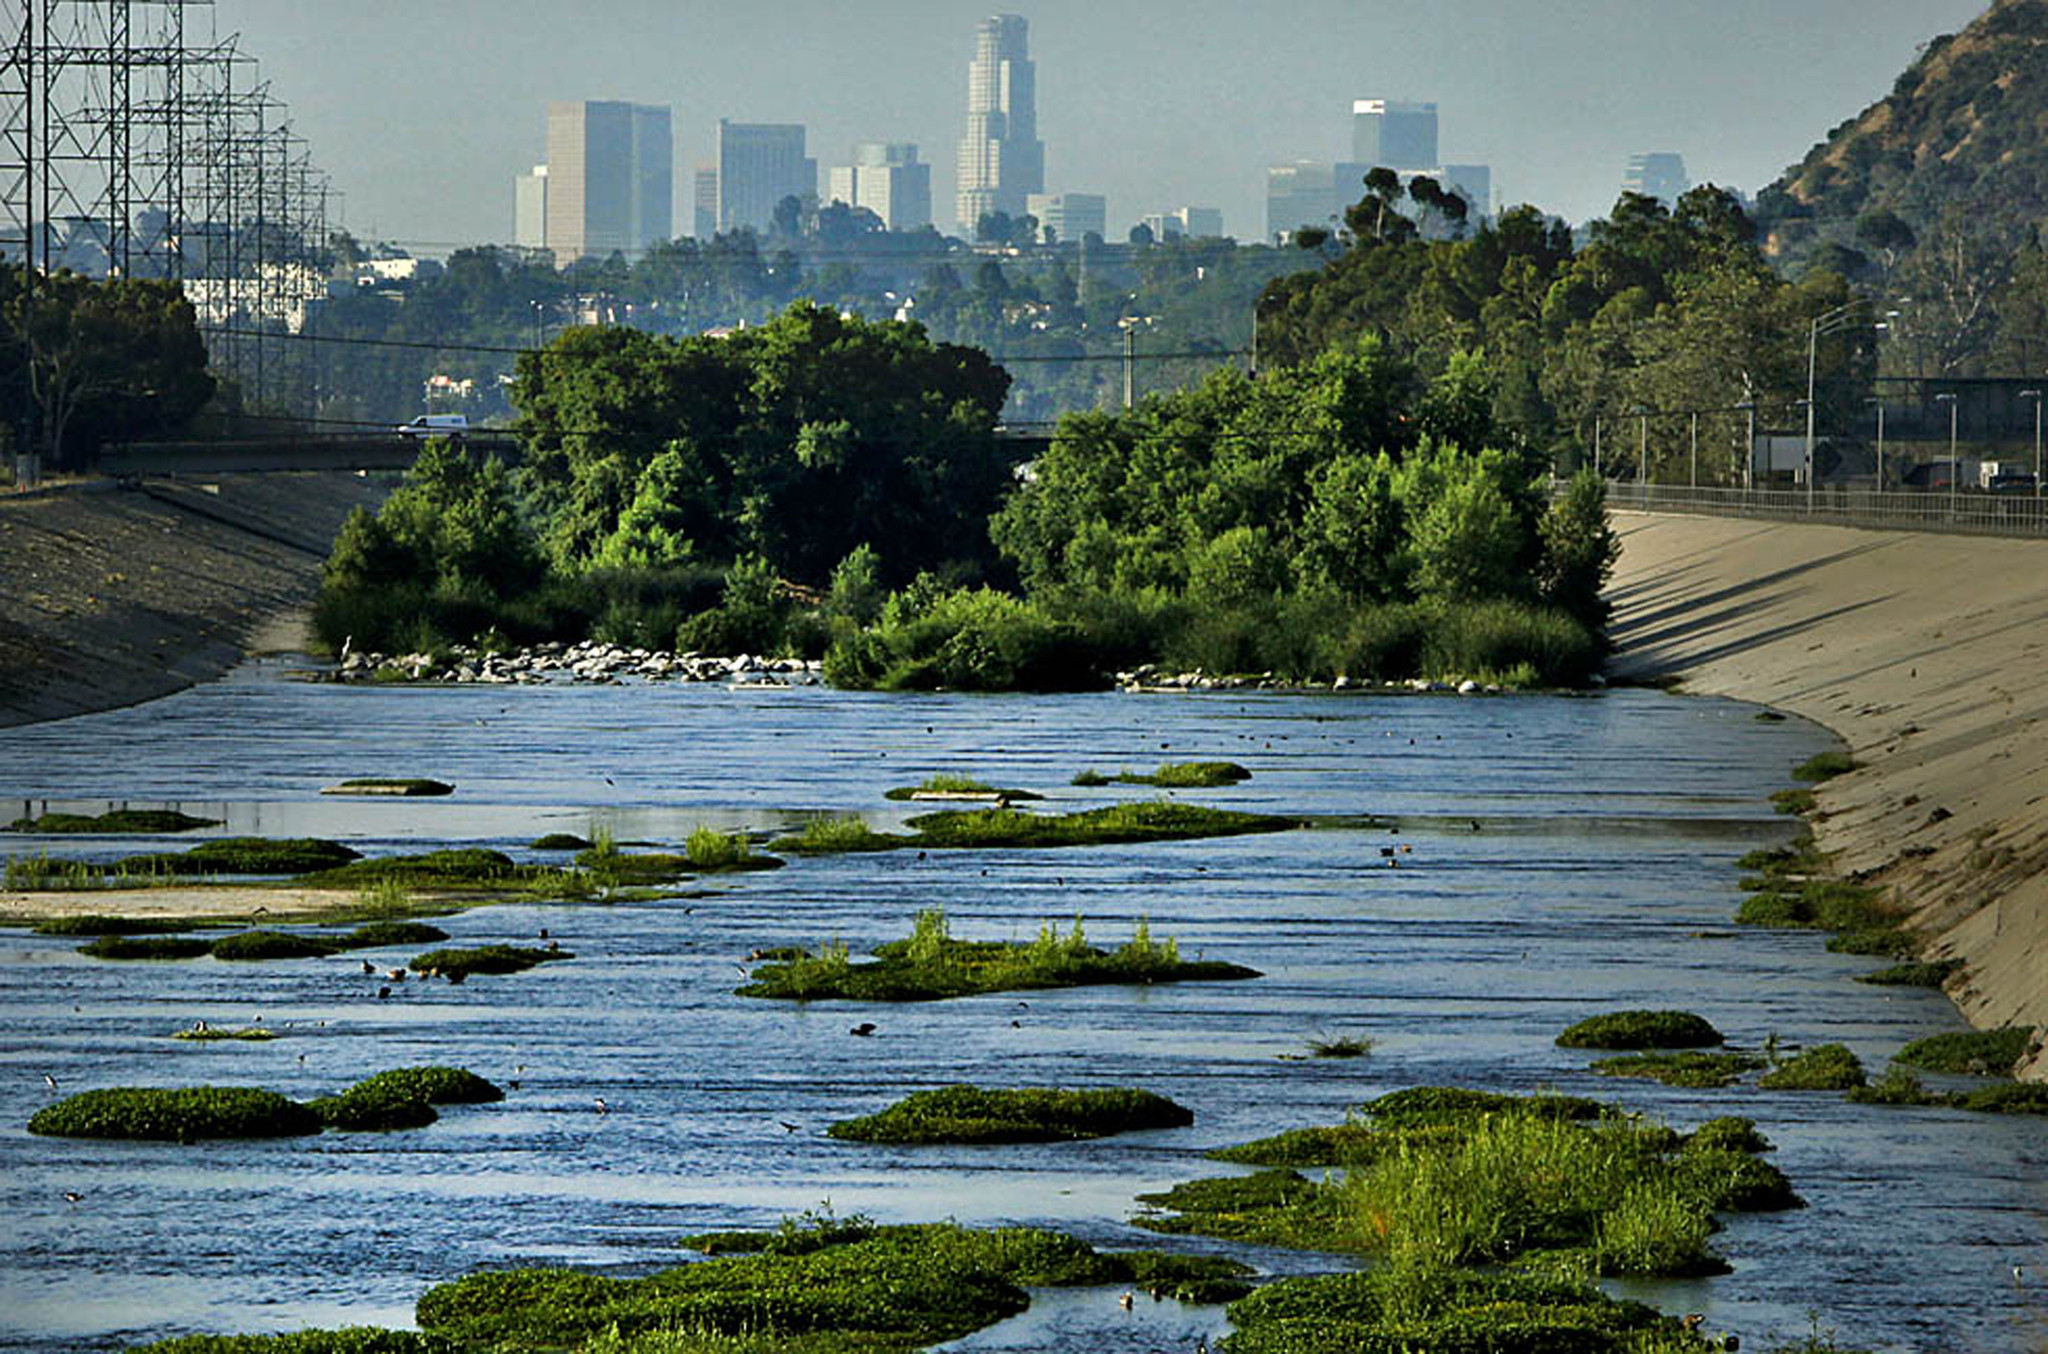 A wildlife restoration project implemented on the LA River offers an idea of the potential of a greener river space